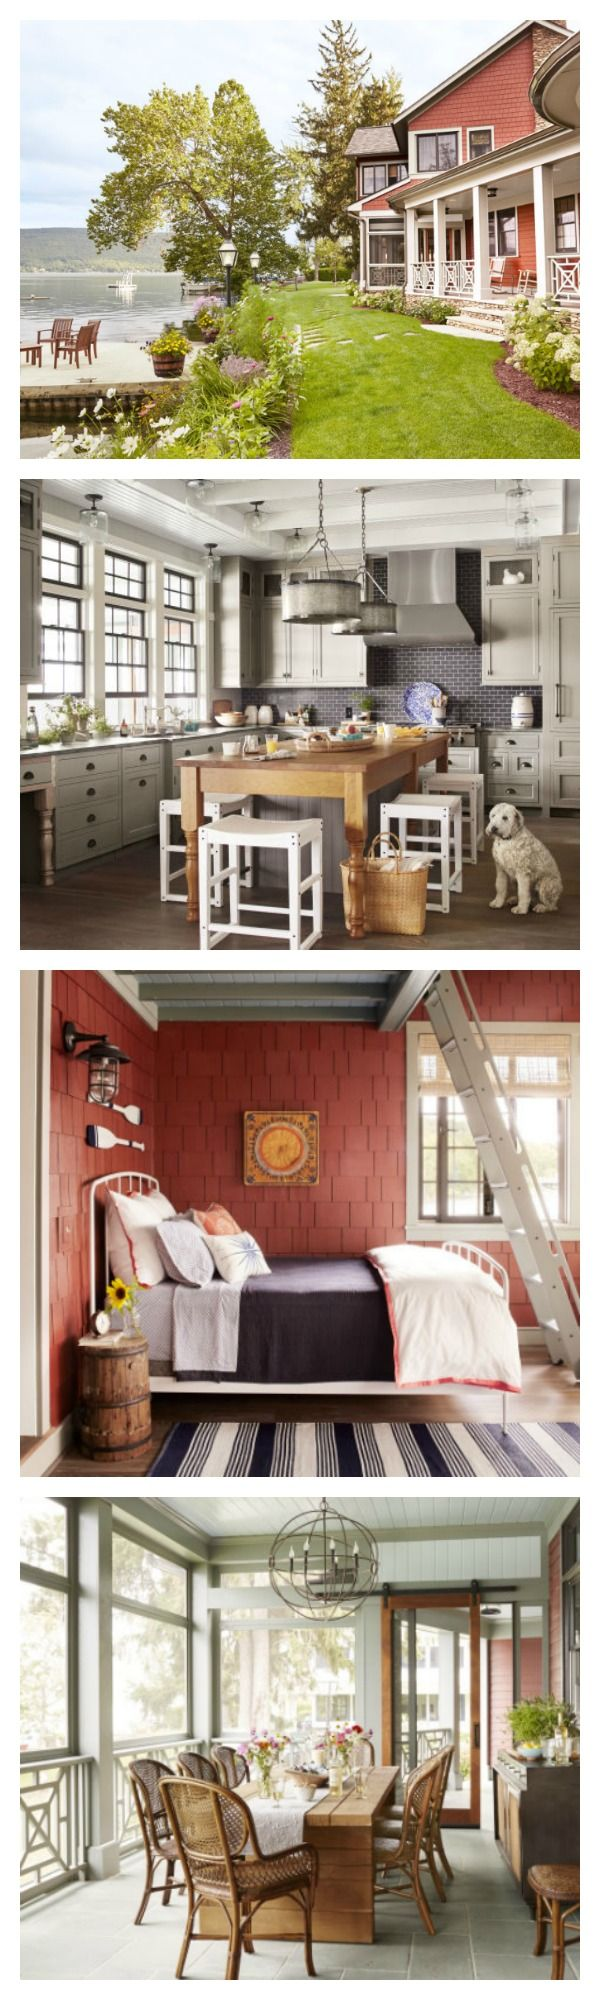 490 best lake house living images on pinterest lake houses 10 essential rules for decorating a lake house